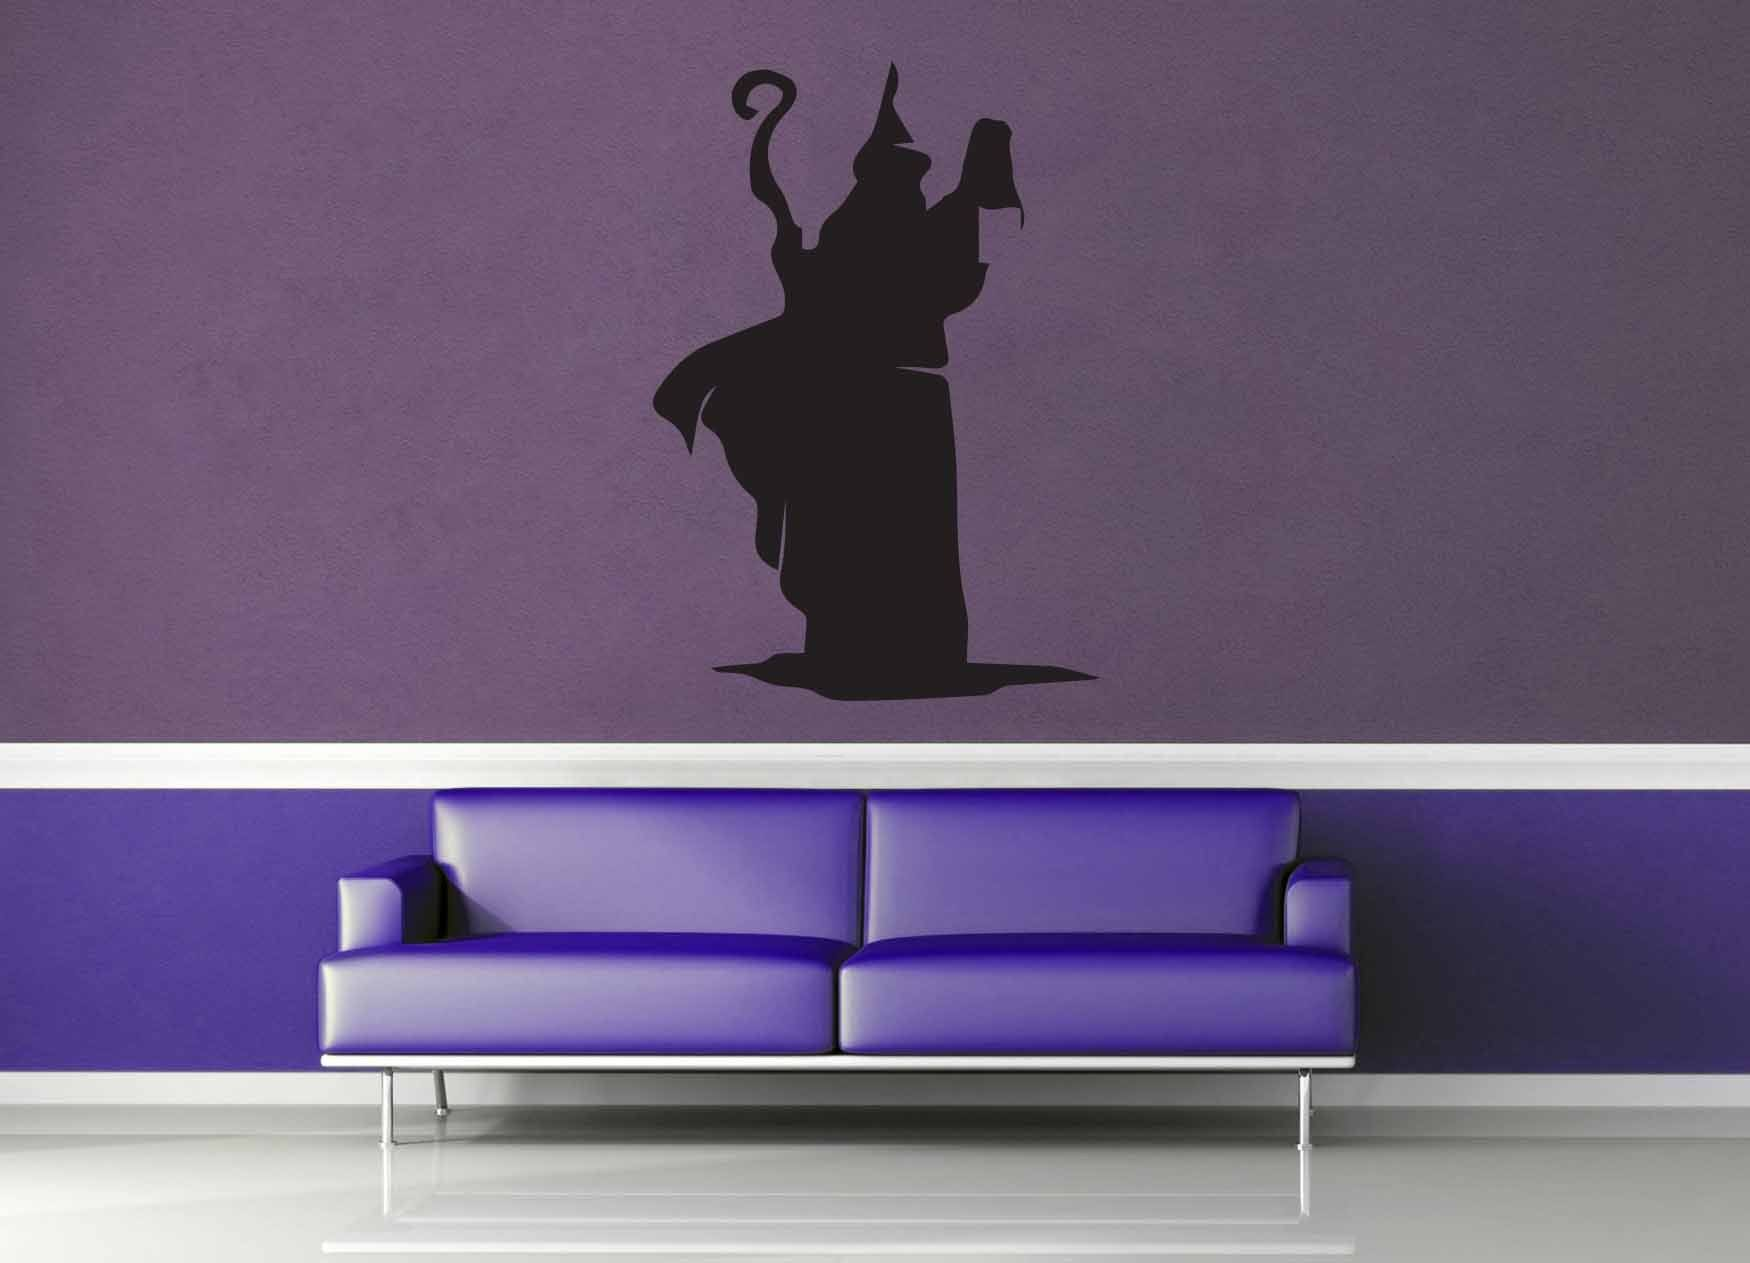 Wizard Silhouette - Wall Decal